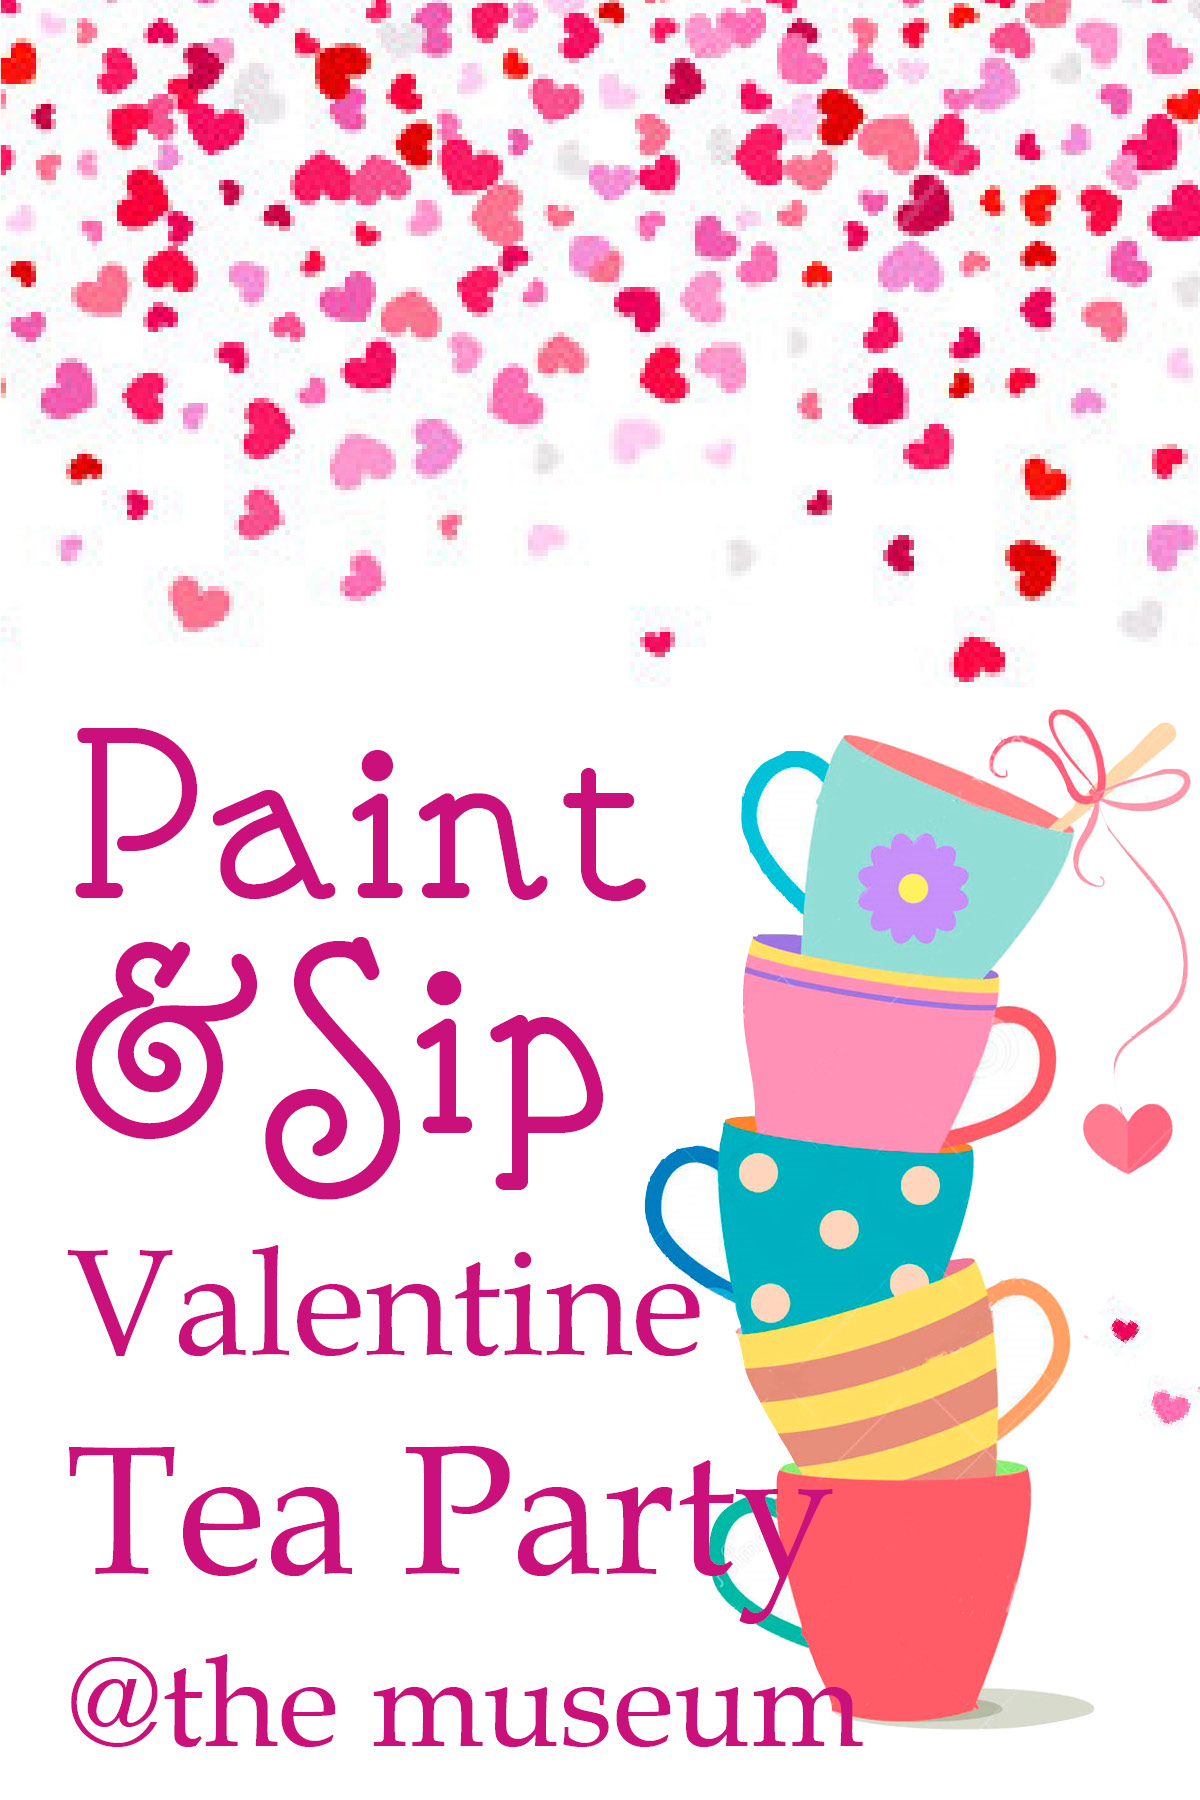 paint and sip website2.jpg